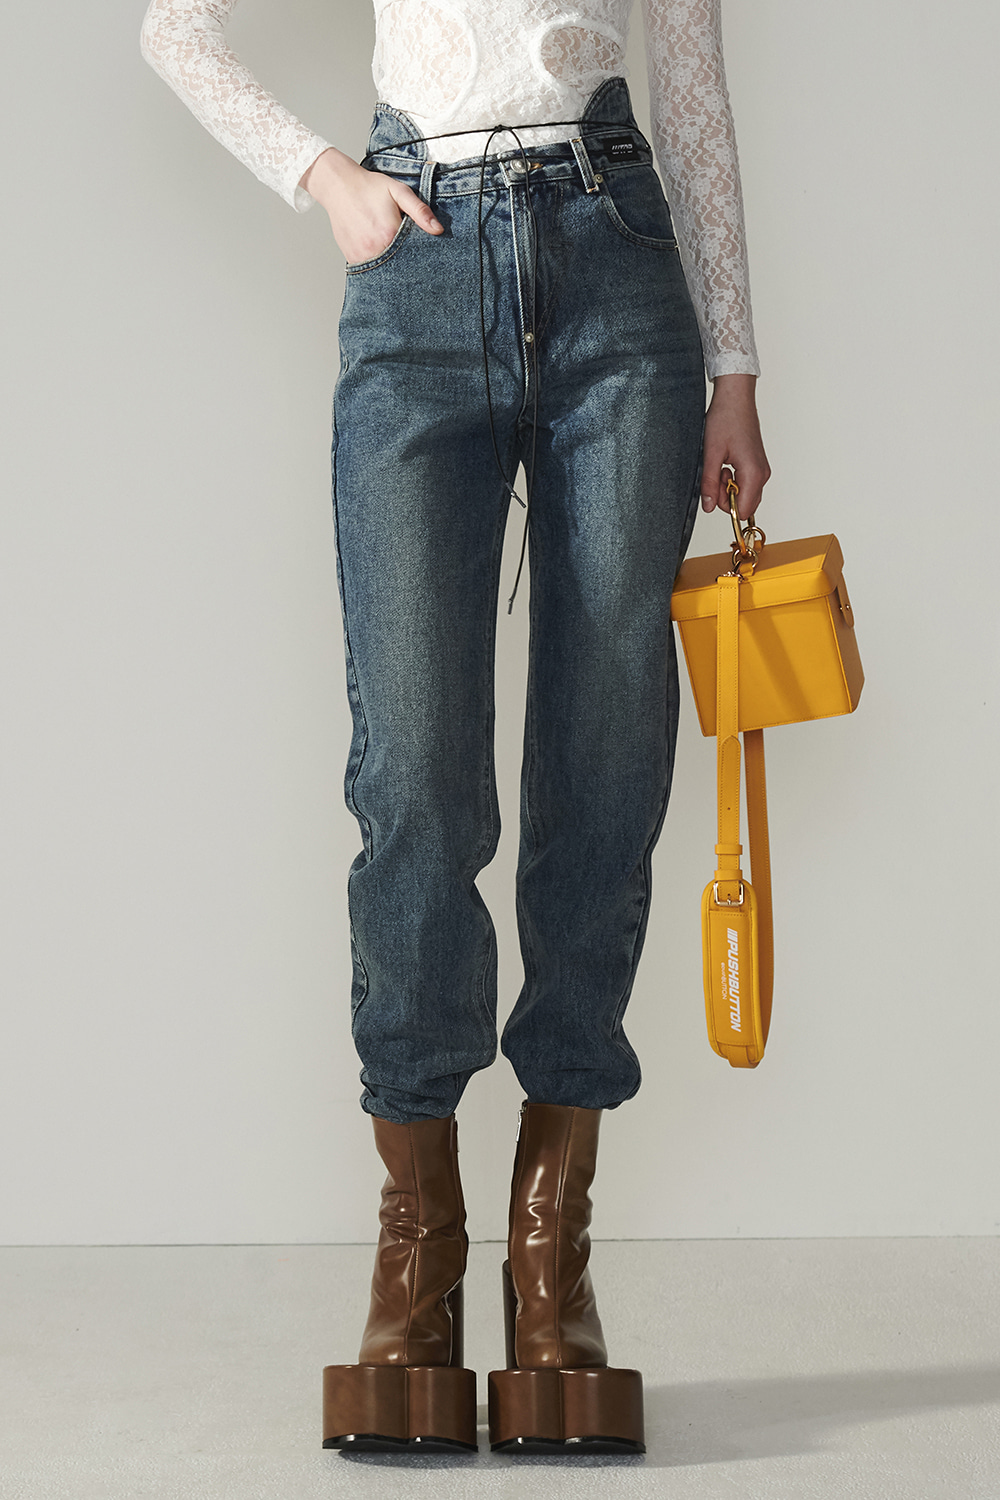 SS21 BACK-UP DEEP BLUE JEANS